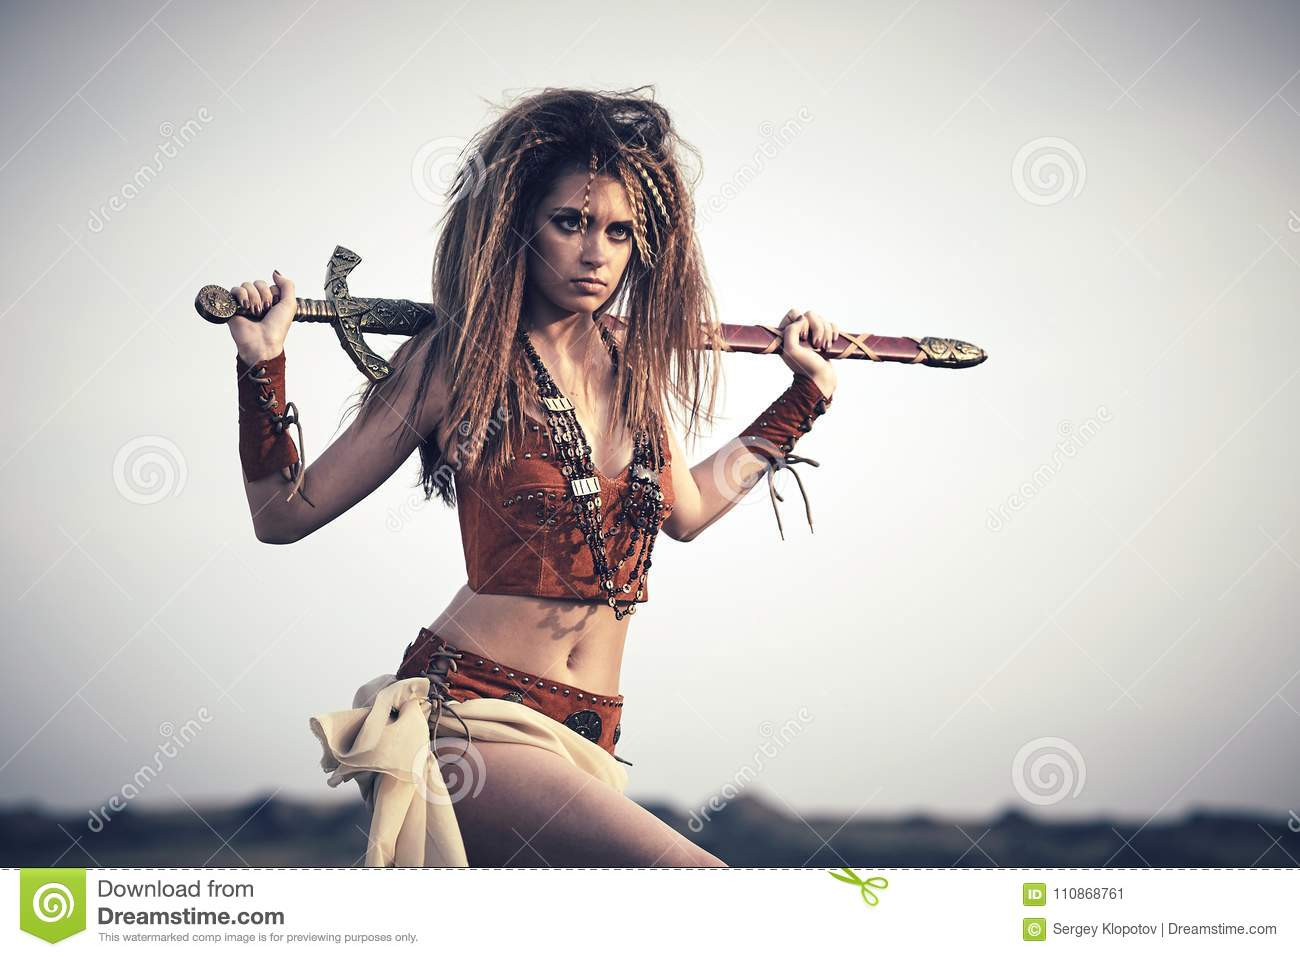 Beautiful girl in the clothes of a Viking or Amazon, with a sword on a background of sky.